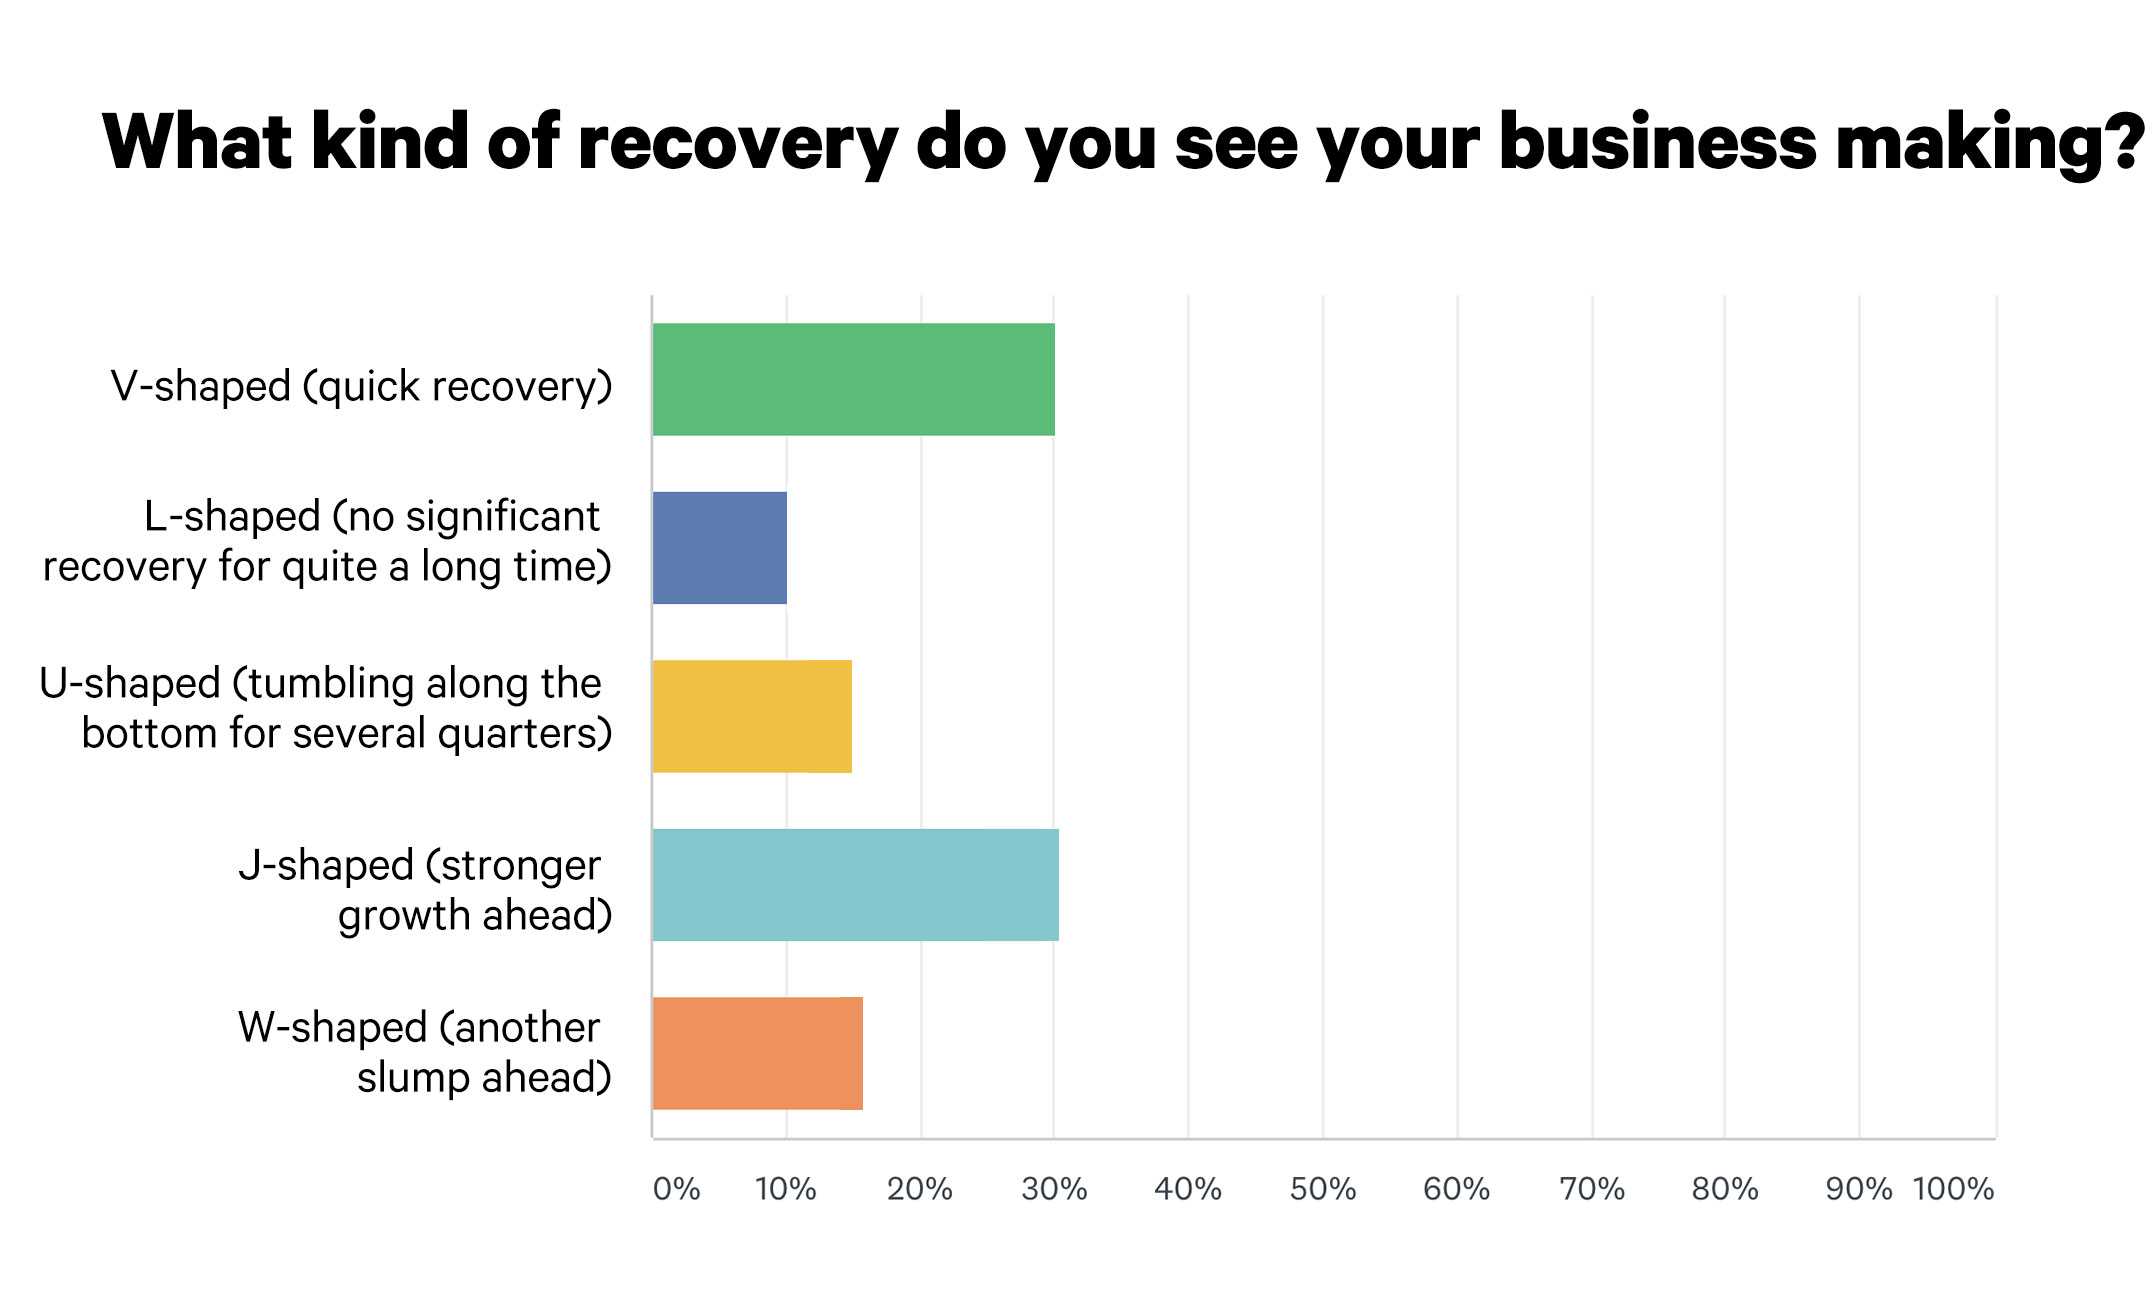 About 60% of Eyecare Biz Owners Believe They're on a Recovery Track